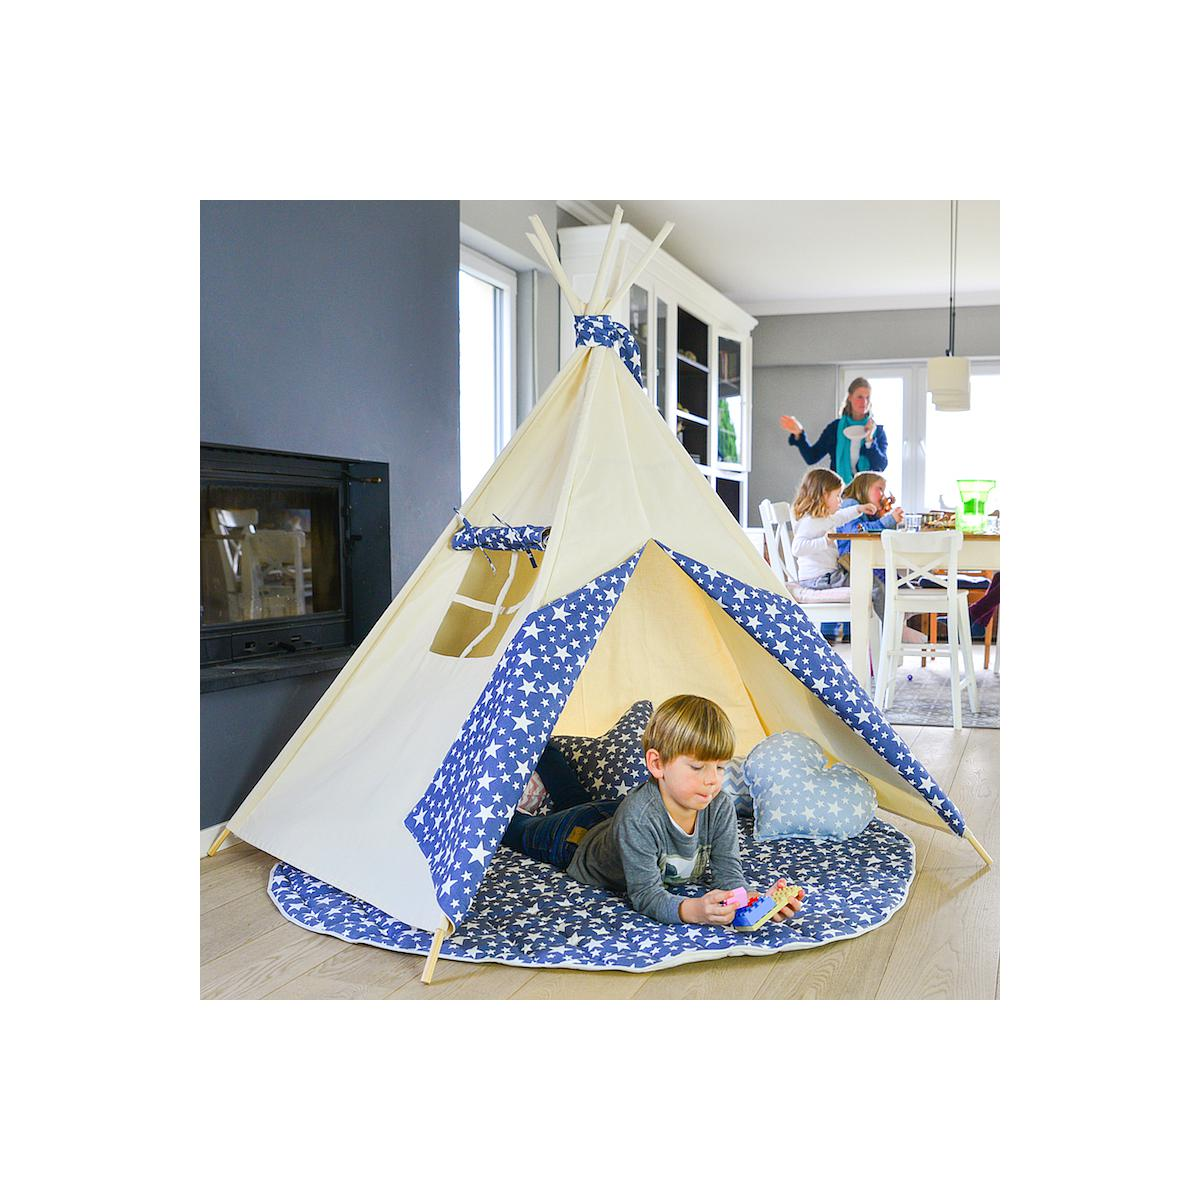 Pack Tipi niños con alfombra Abitare Kids Blue jeans